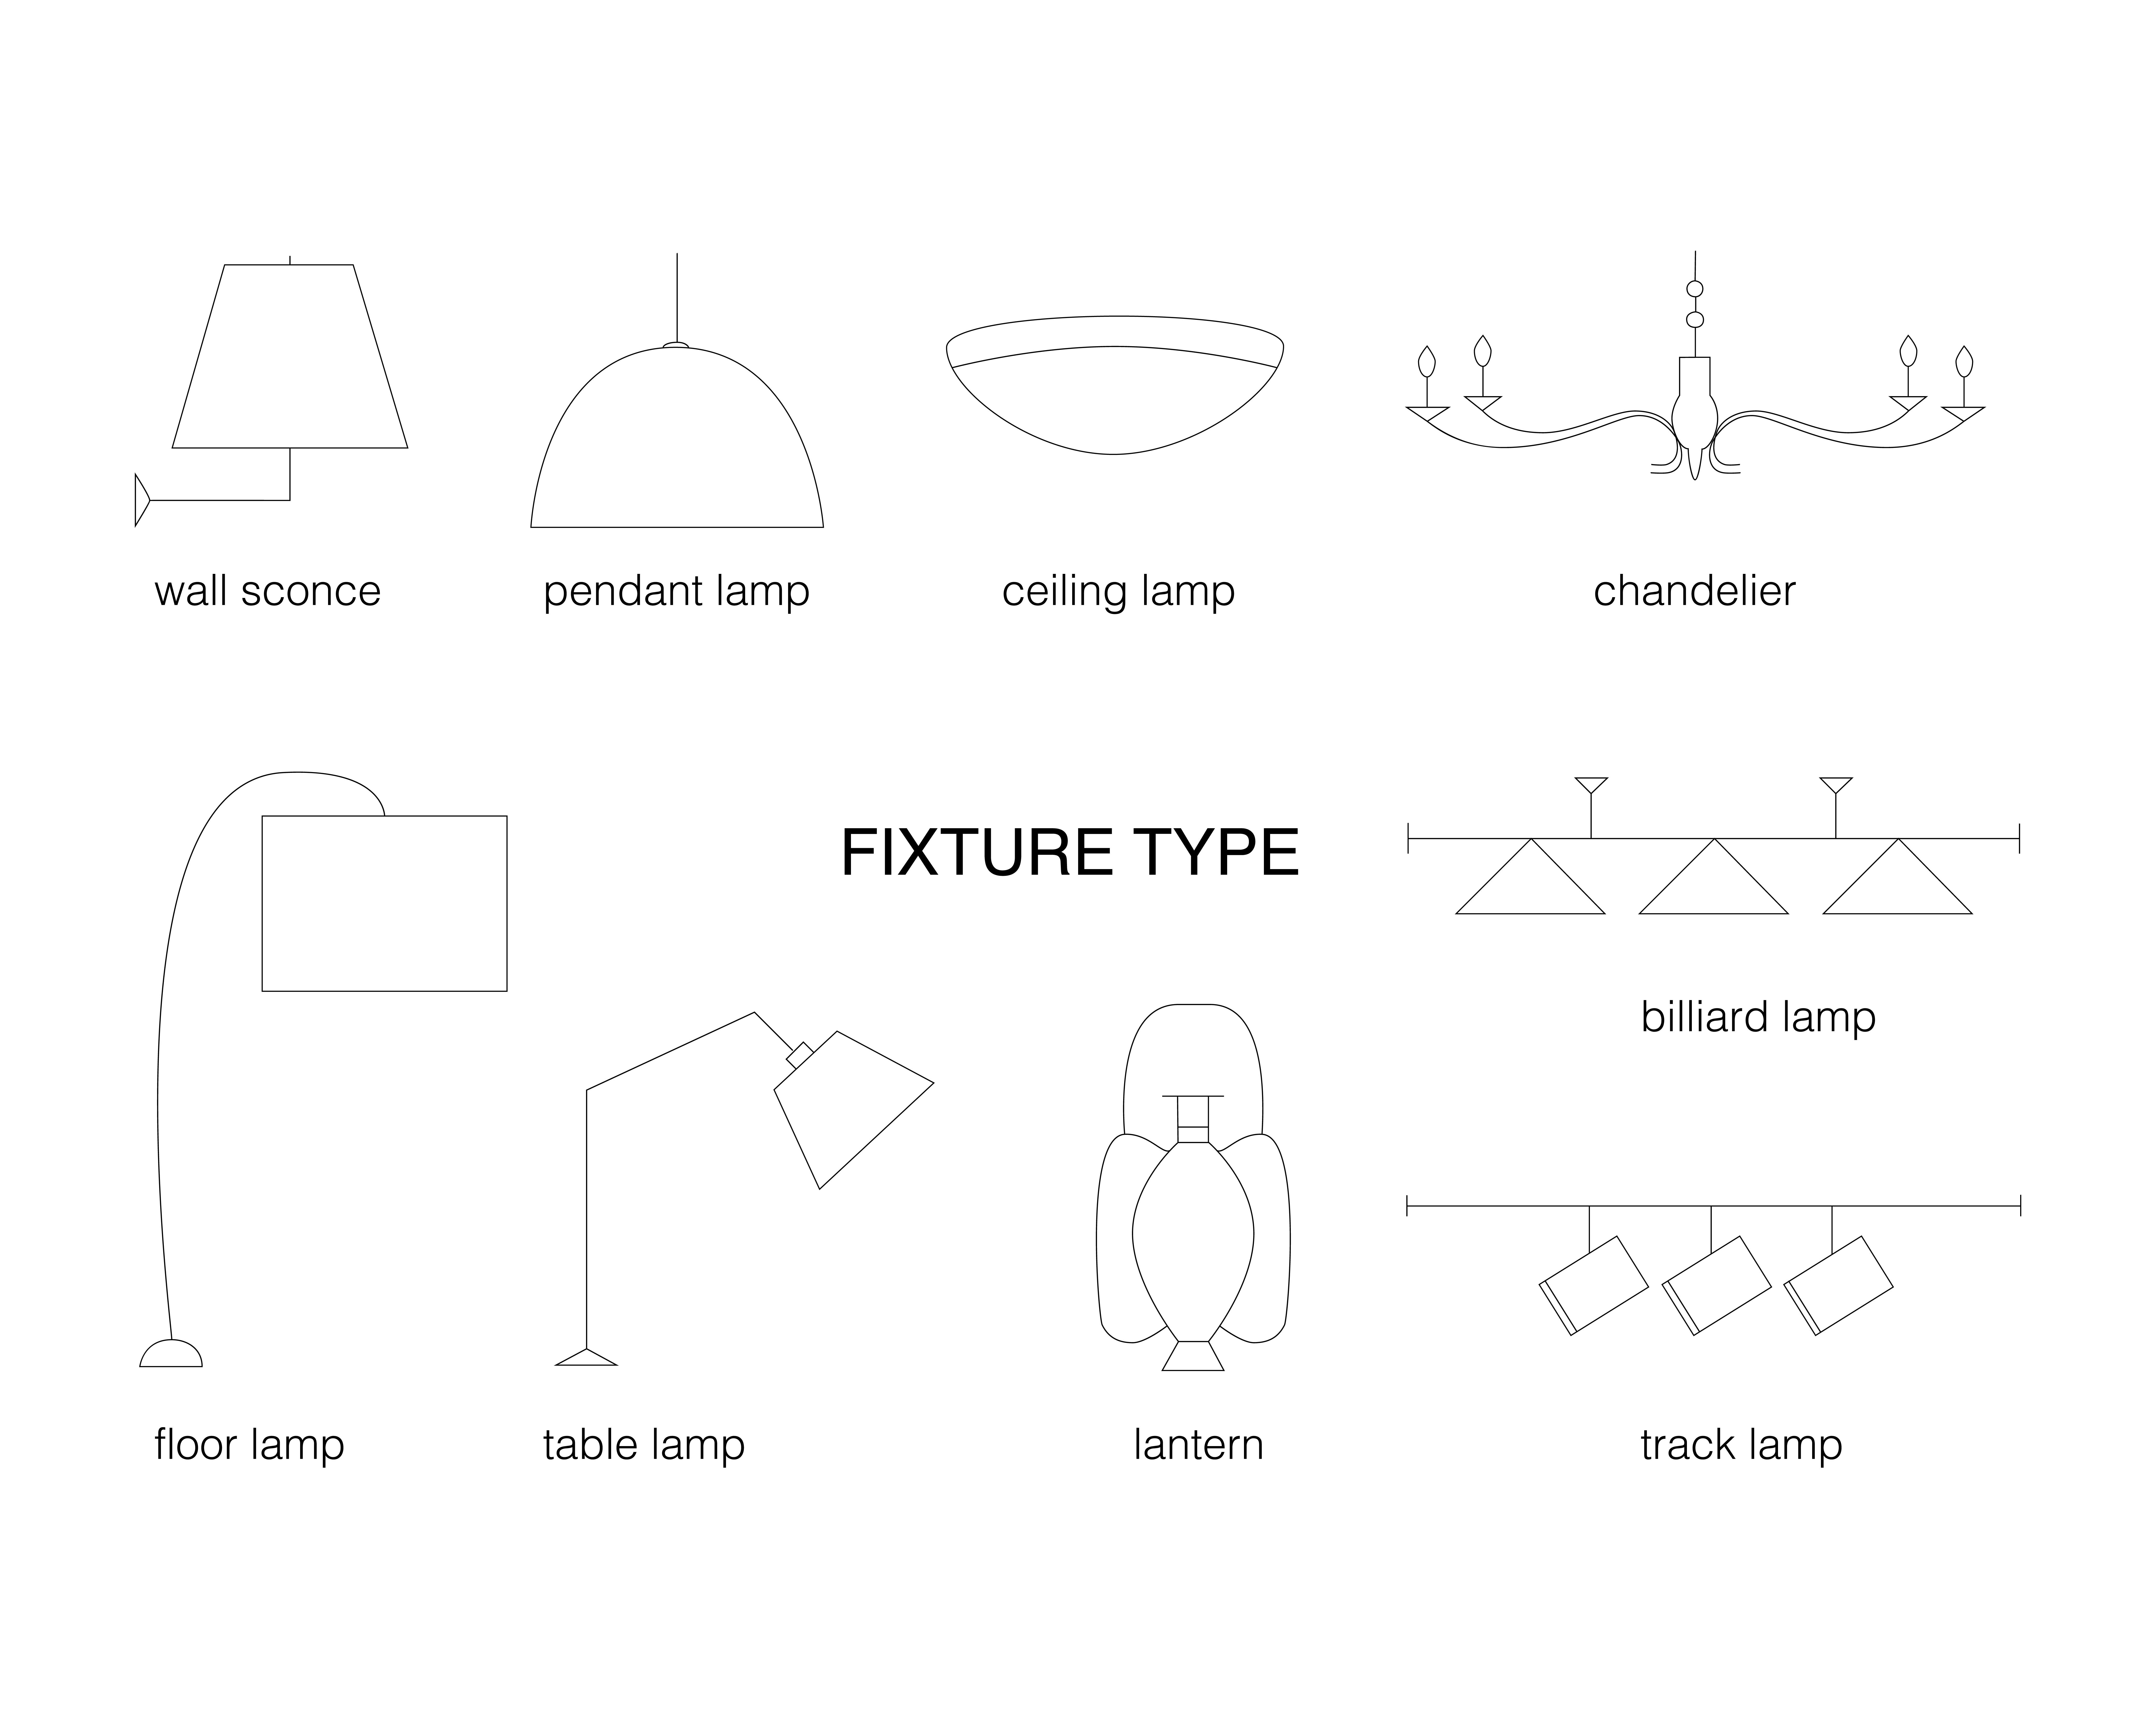 learn-light-fixture-types